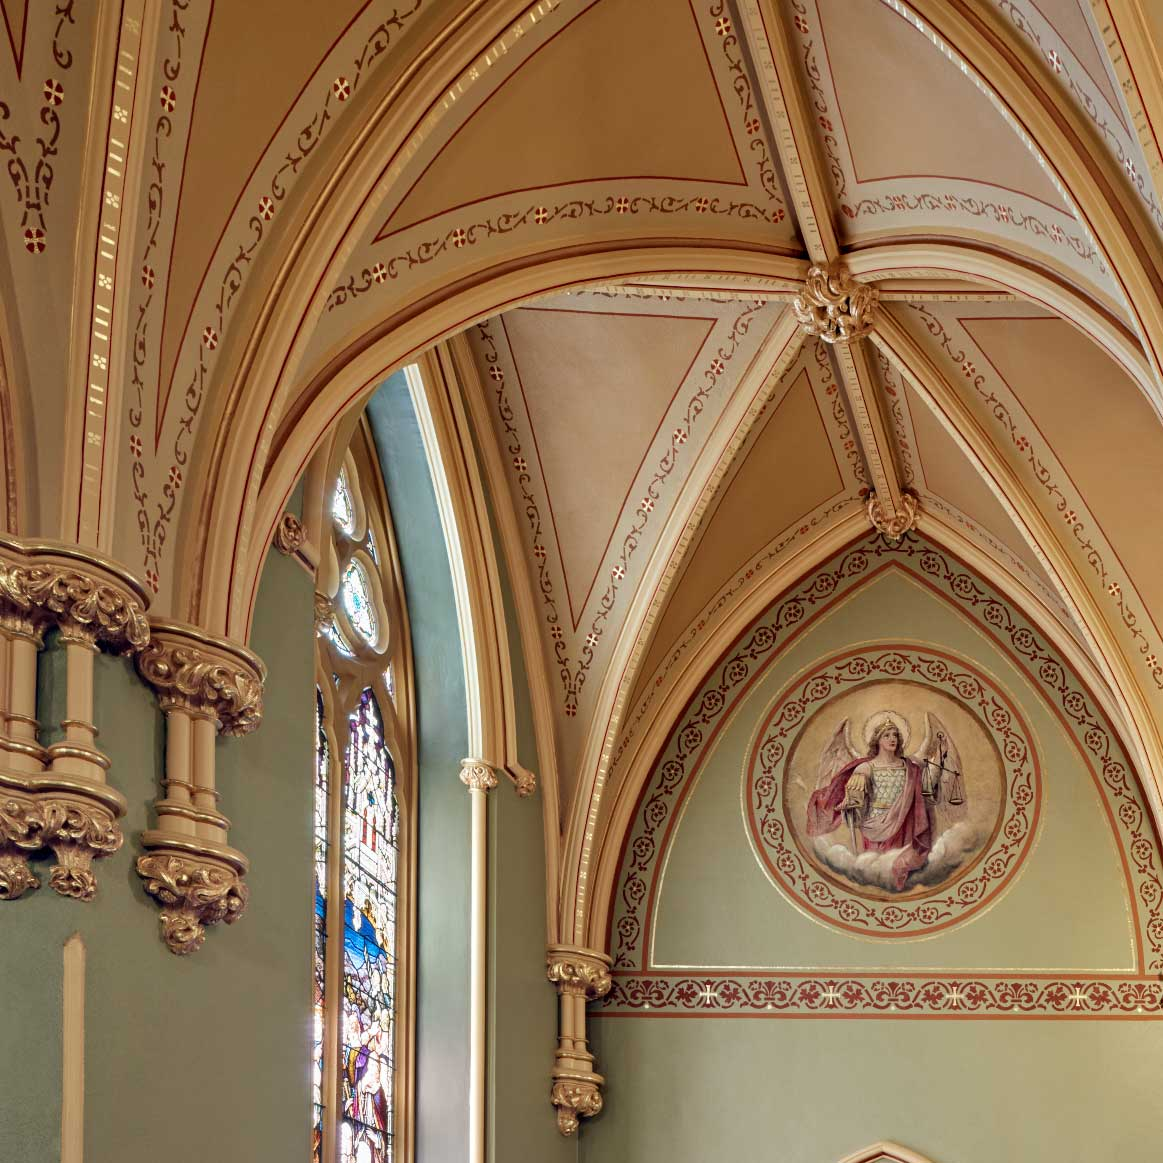 Earlier, we showed the stenciling that was uncovered during the investigation of historic finishes at St. Patrick's Church in Lowell, Massachusetts.  Take a look at this incredible photo of the church after the restoration project was complete!  #Decoration #Painting #Restoration